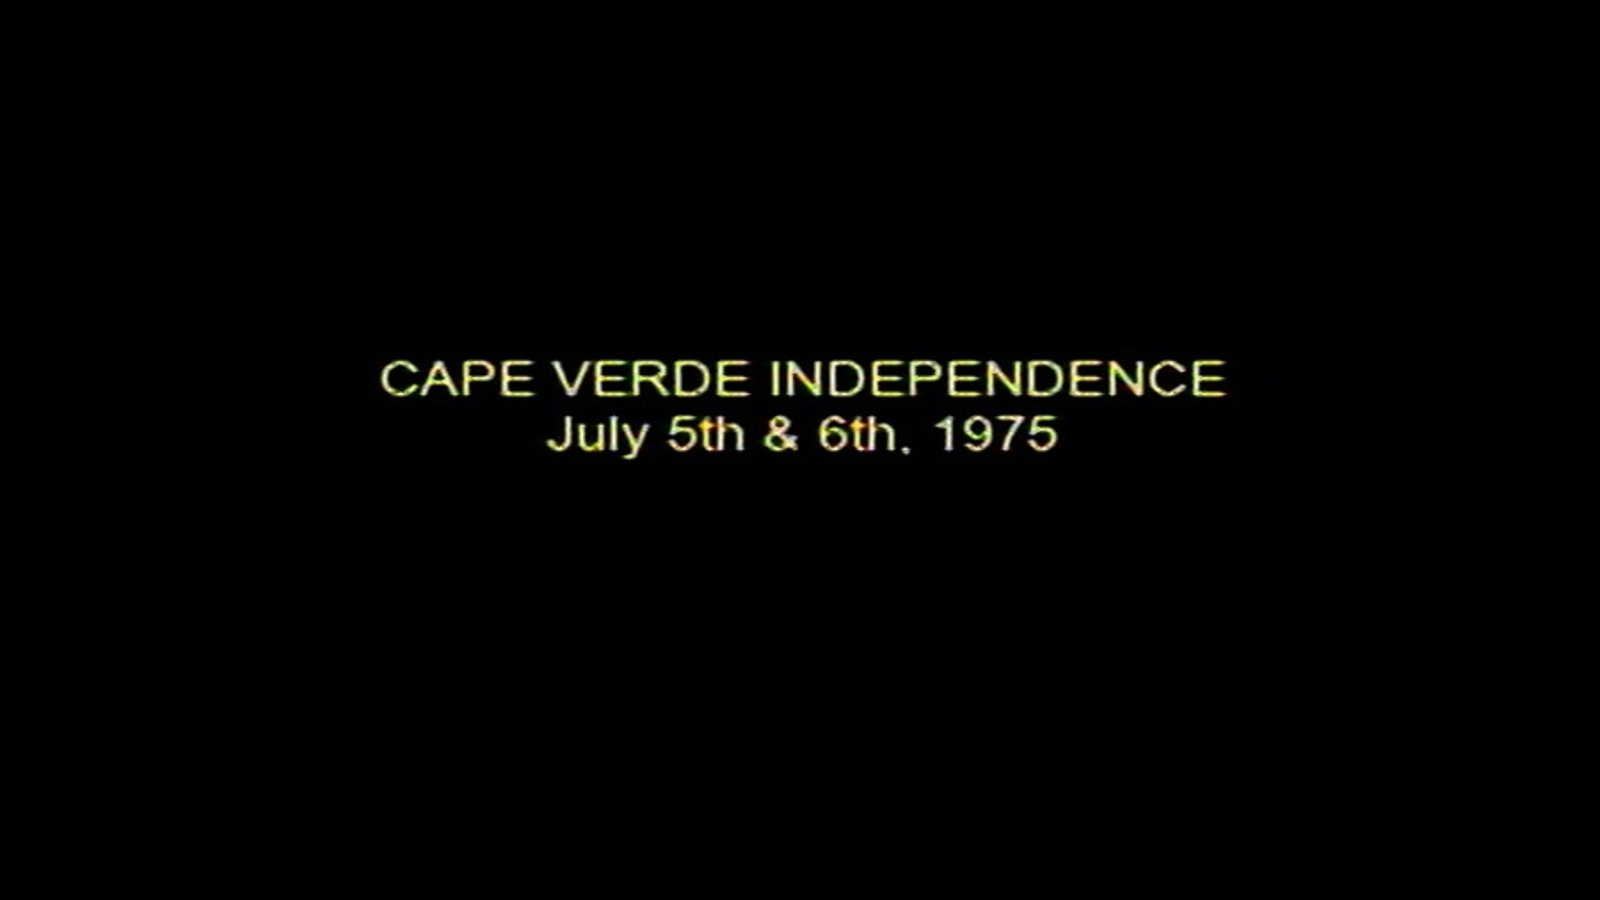 Cape Verde Independence July 5th & 6th 1975 - The First Day of Independence in Cape Verde After 500 Years of Colonial Rule